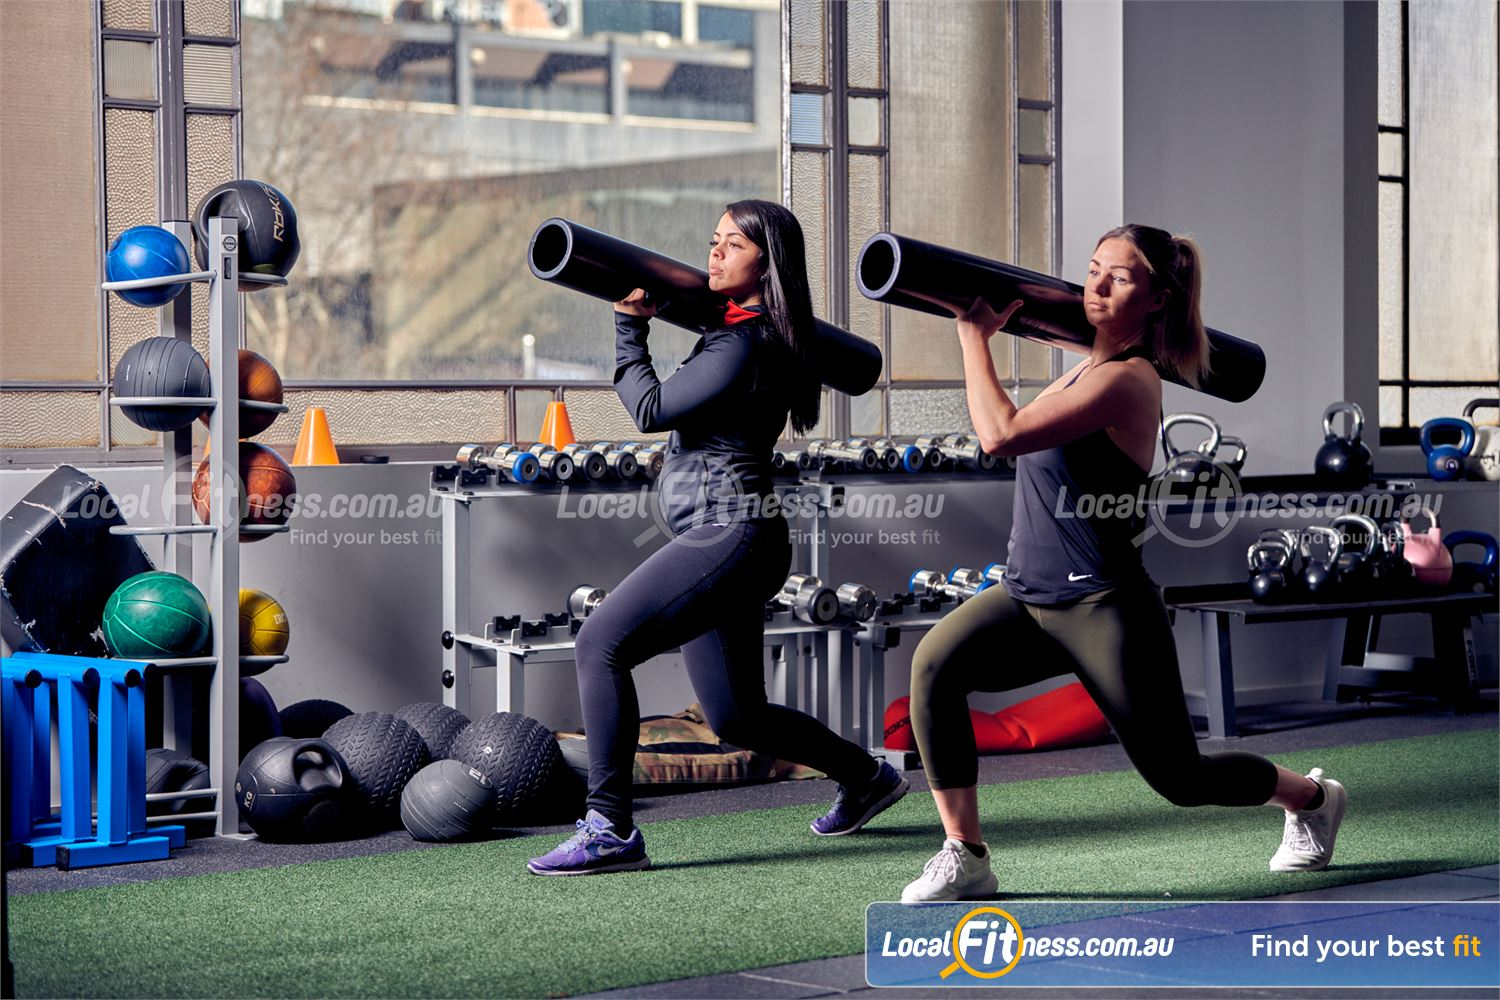 Fitness First Near Yarralumla ViPR training is a great way to improve full body strength at Fitness First Deakin.